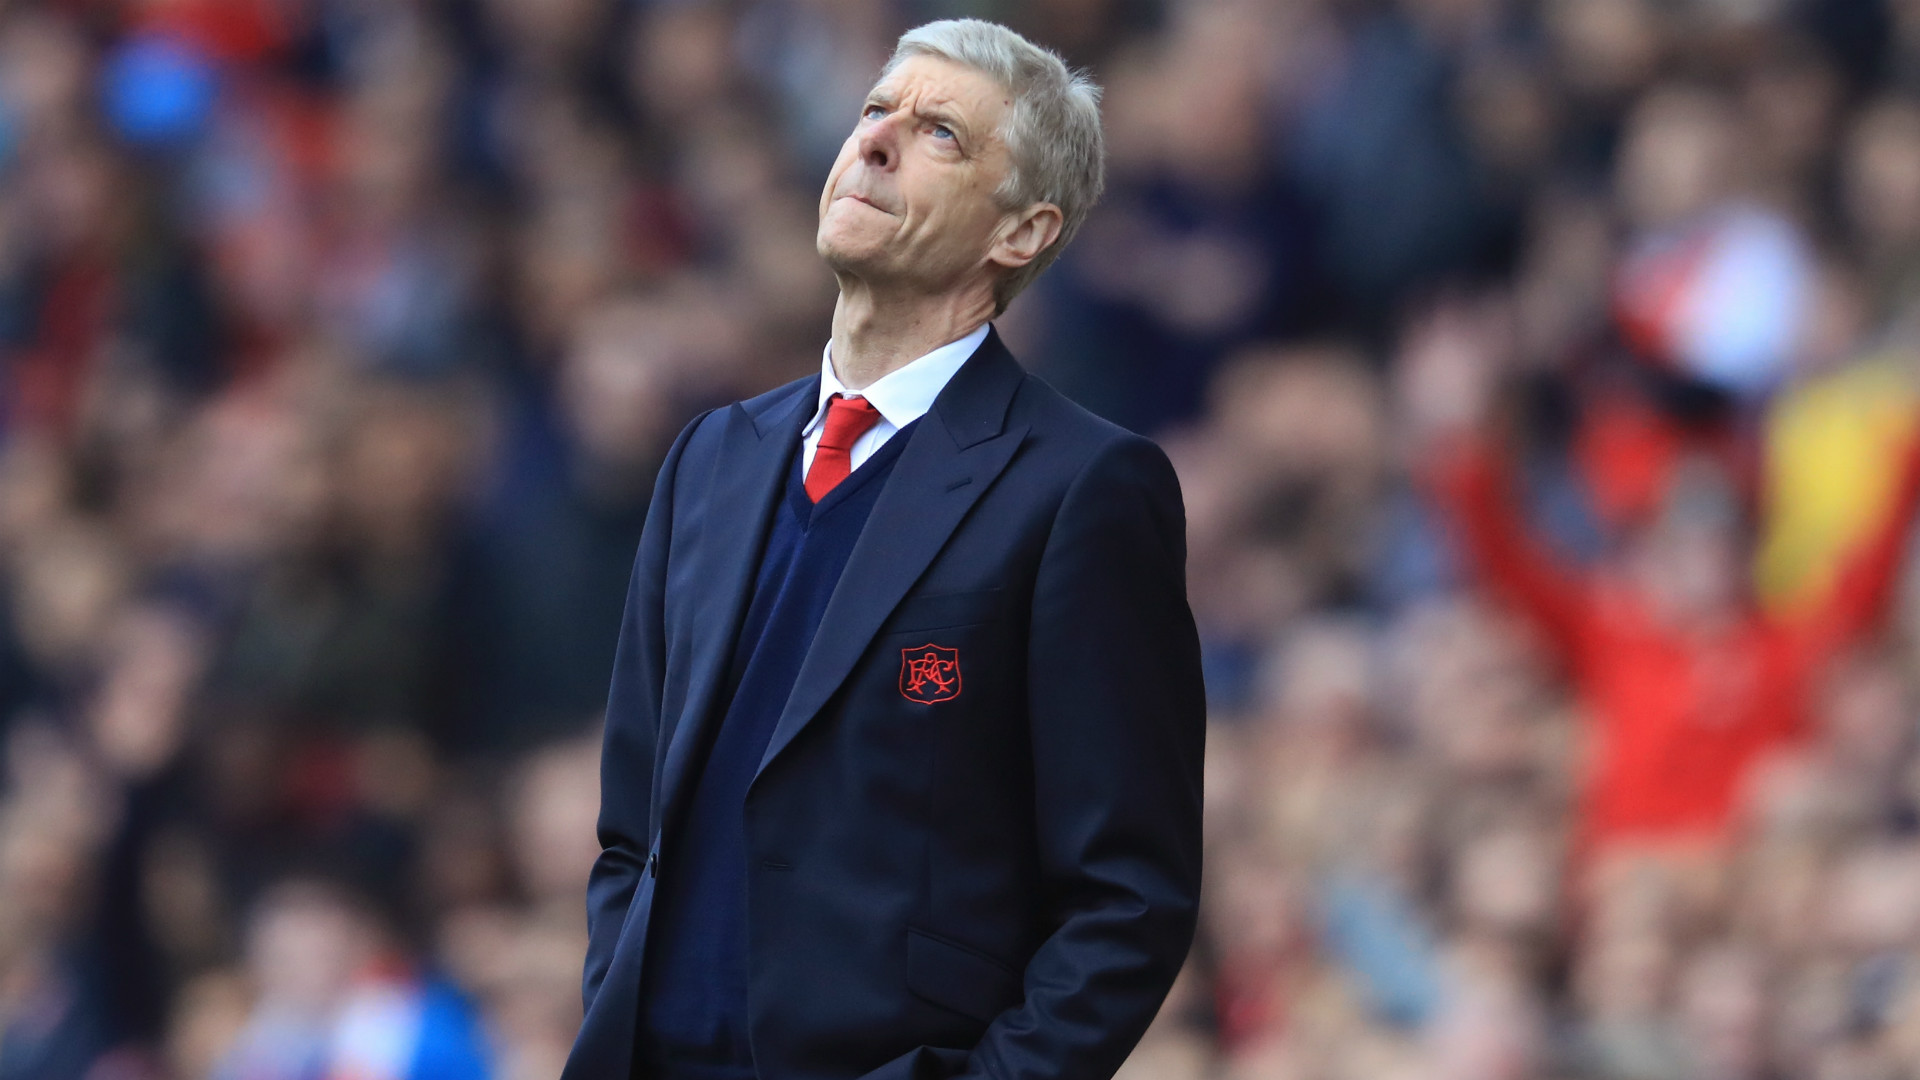 Arsene Wenger to stay at Arsenal with structural changes in place